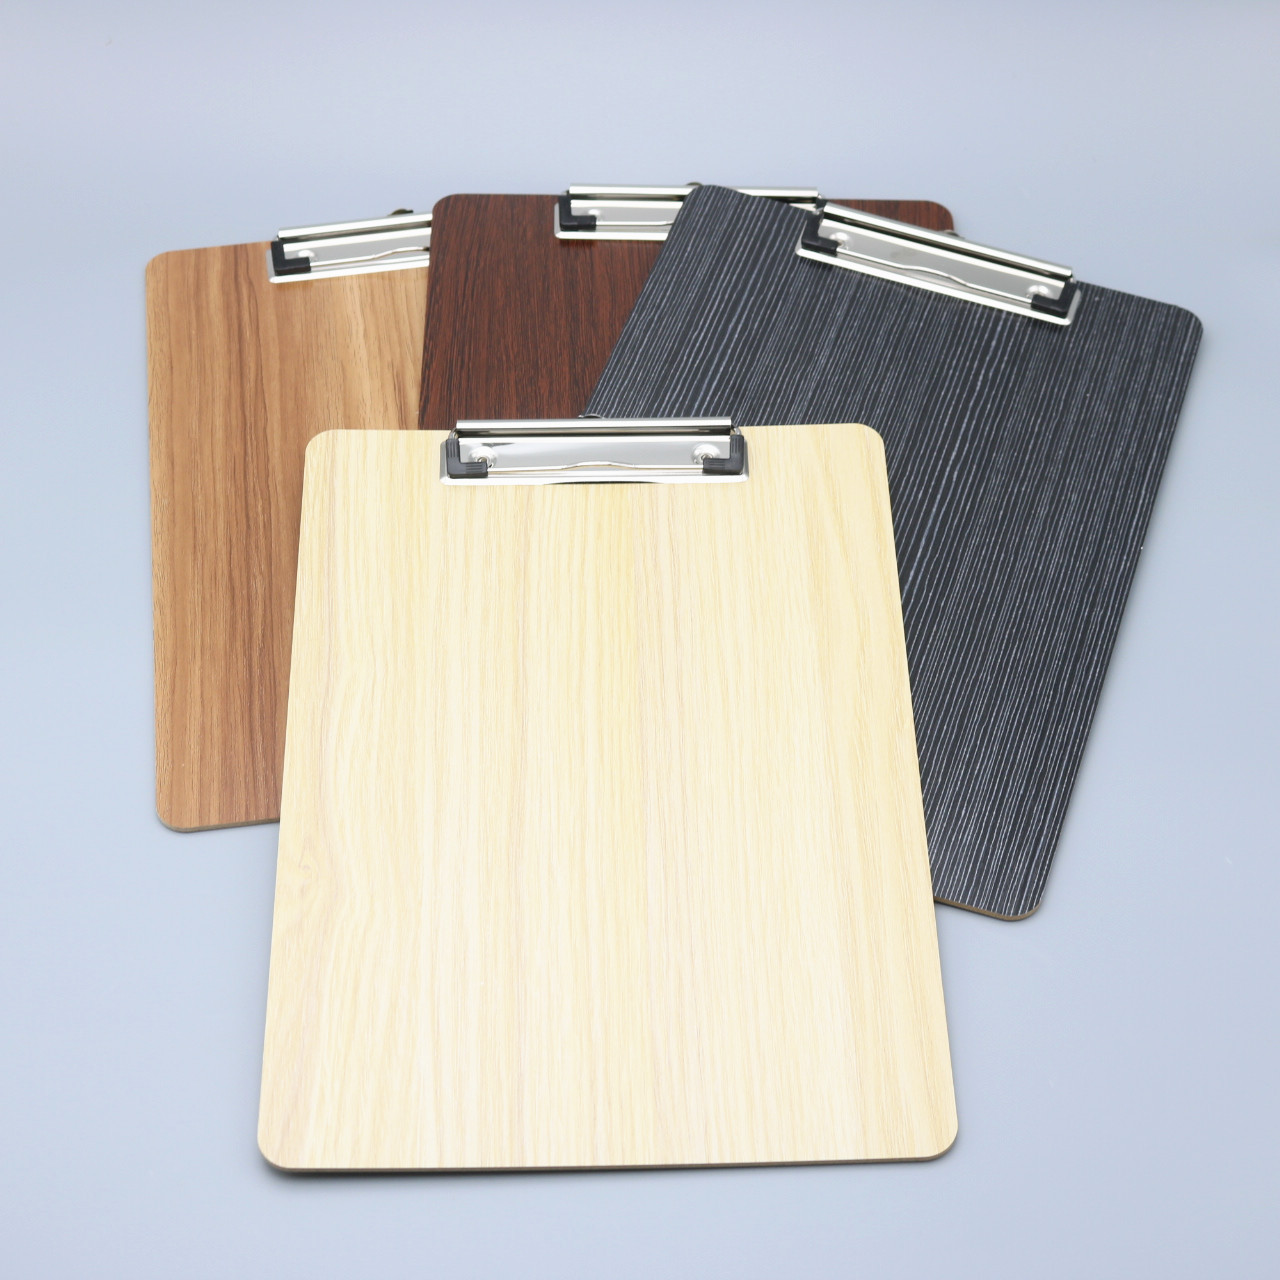 Monochrome Wooden Clipboard for Organizing Paperworks